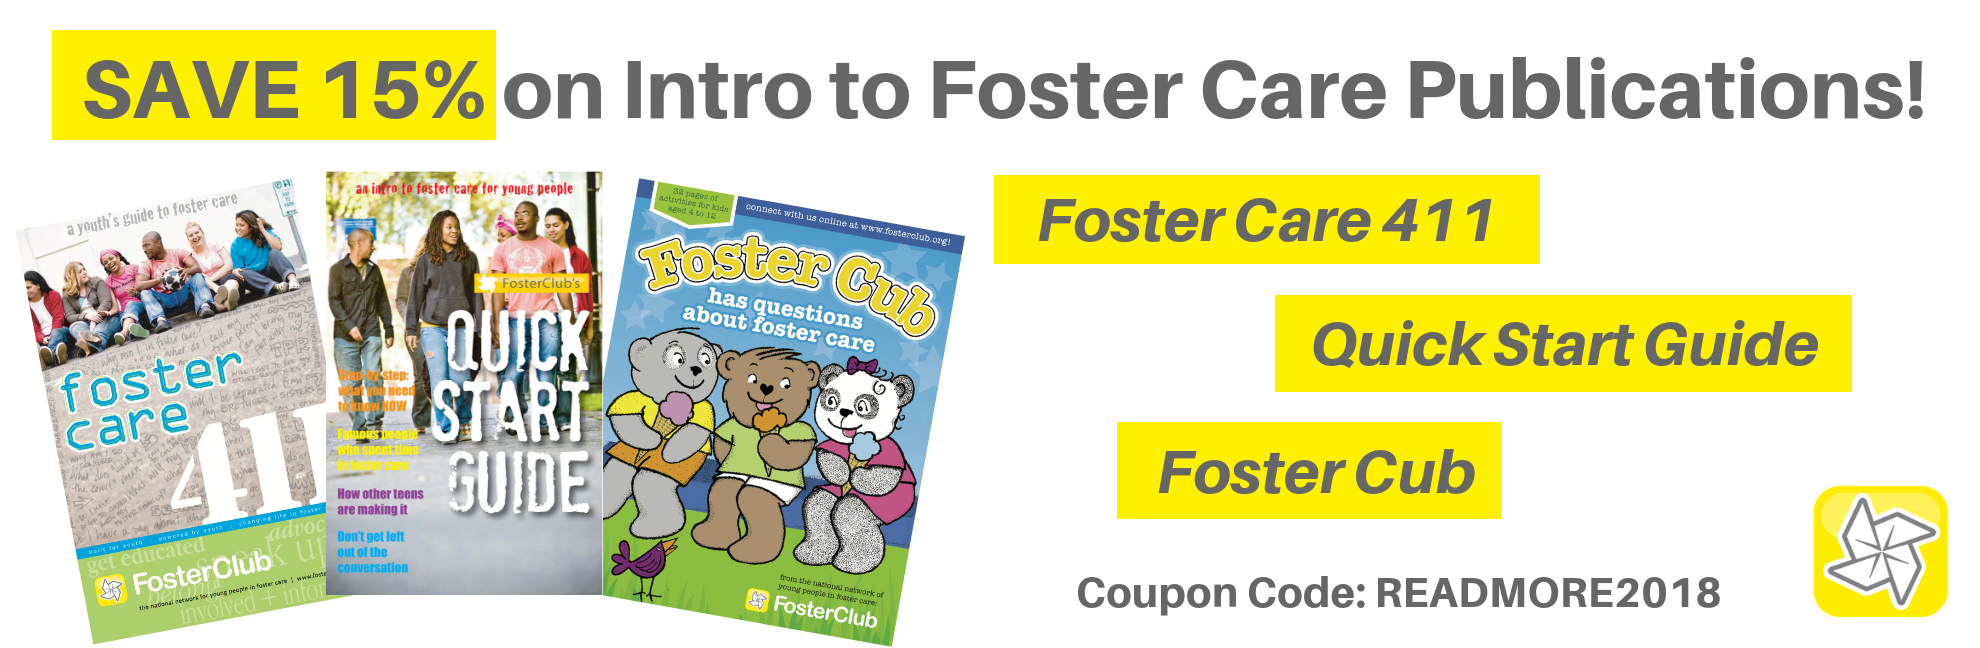 15-off-intro-to-foster-care-banner-for-booth-.png